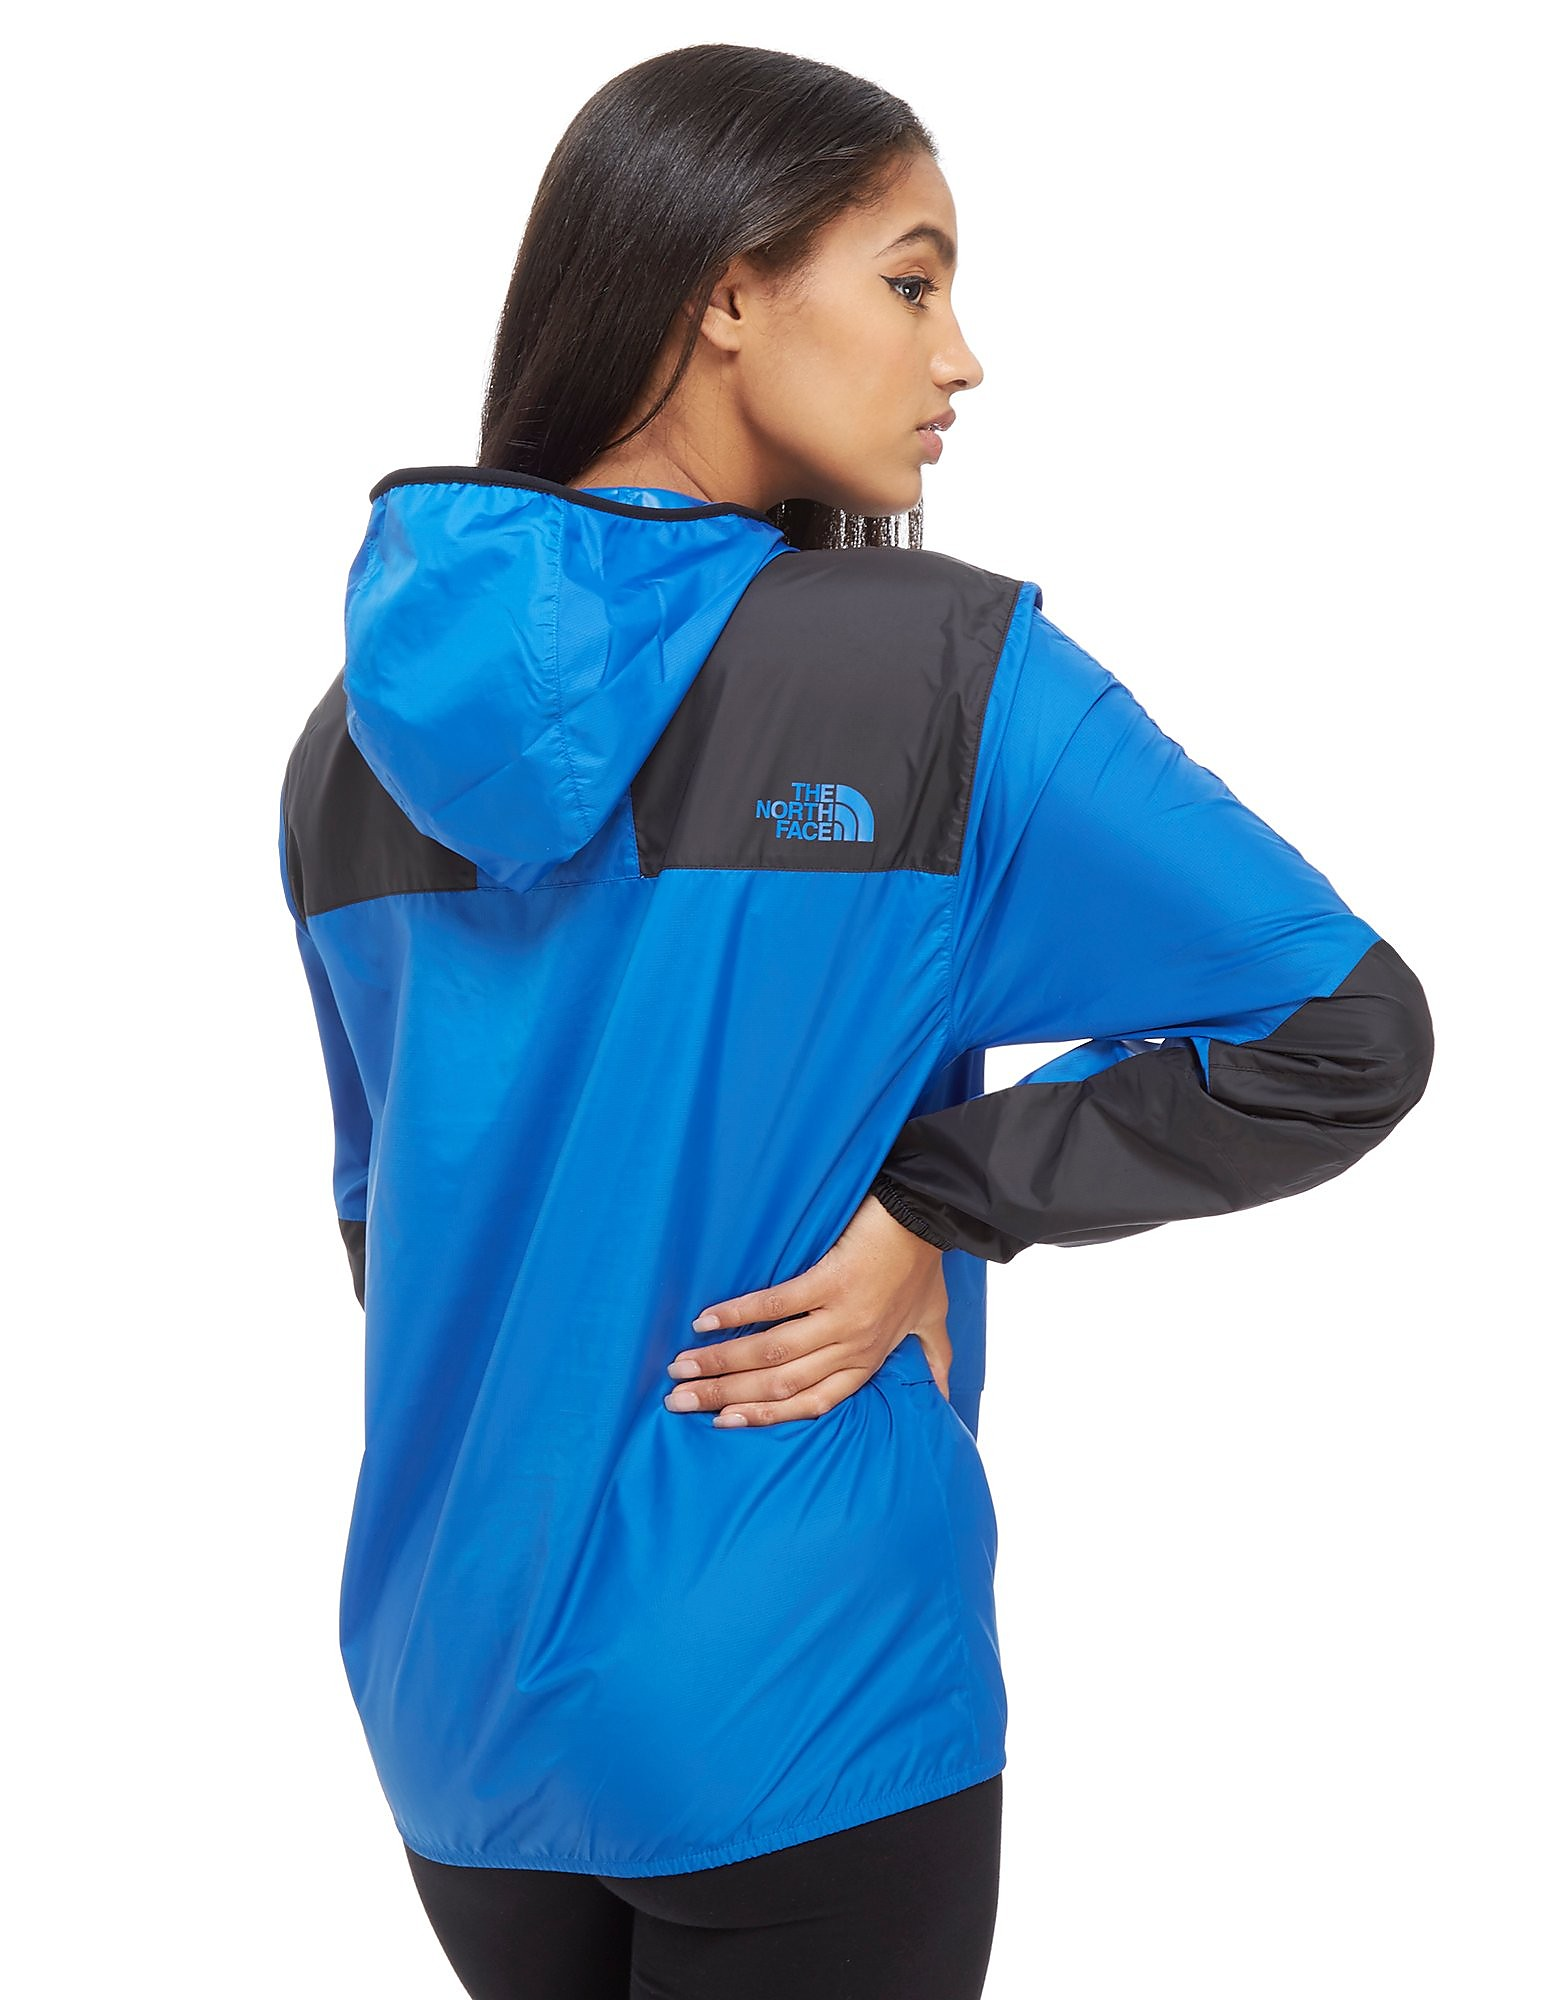 The North Face 1985 Mountain Giacca Donna